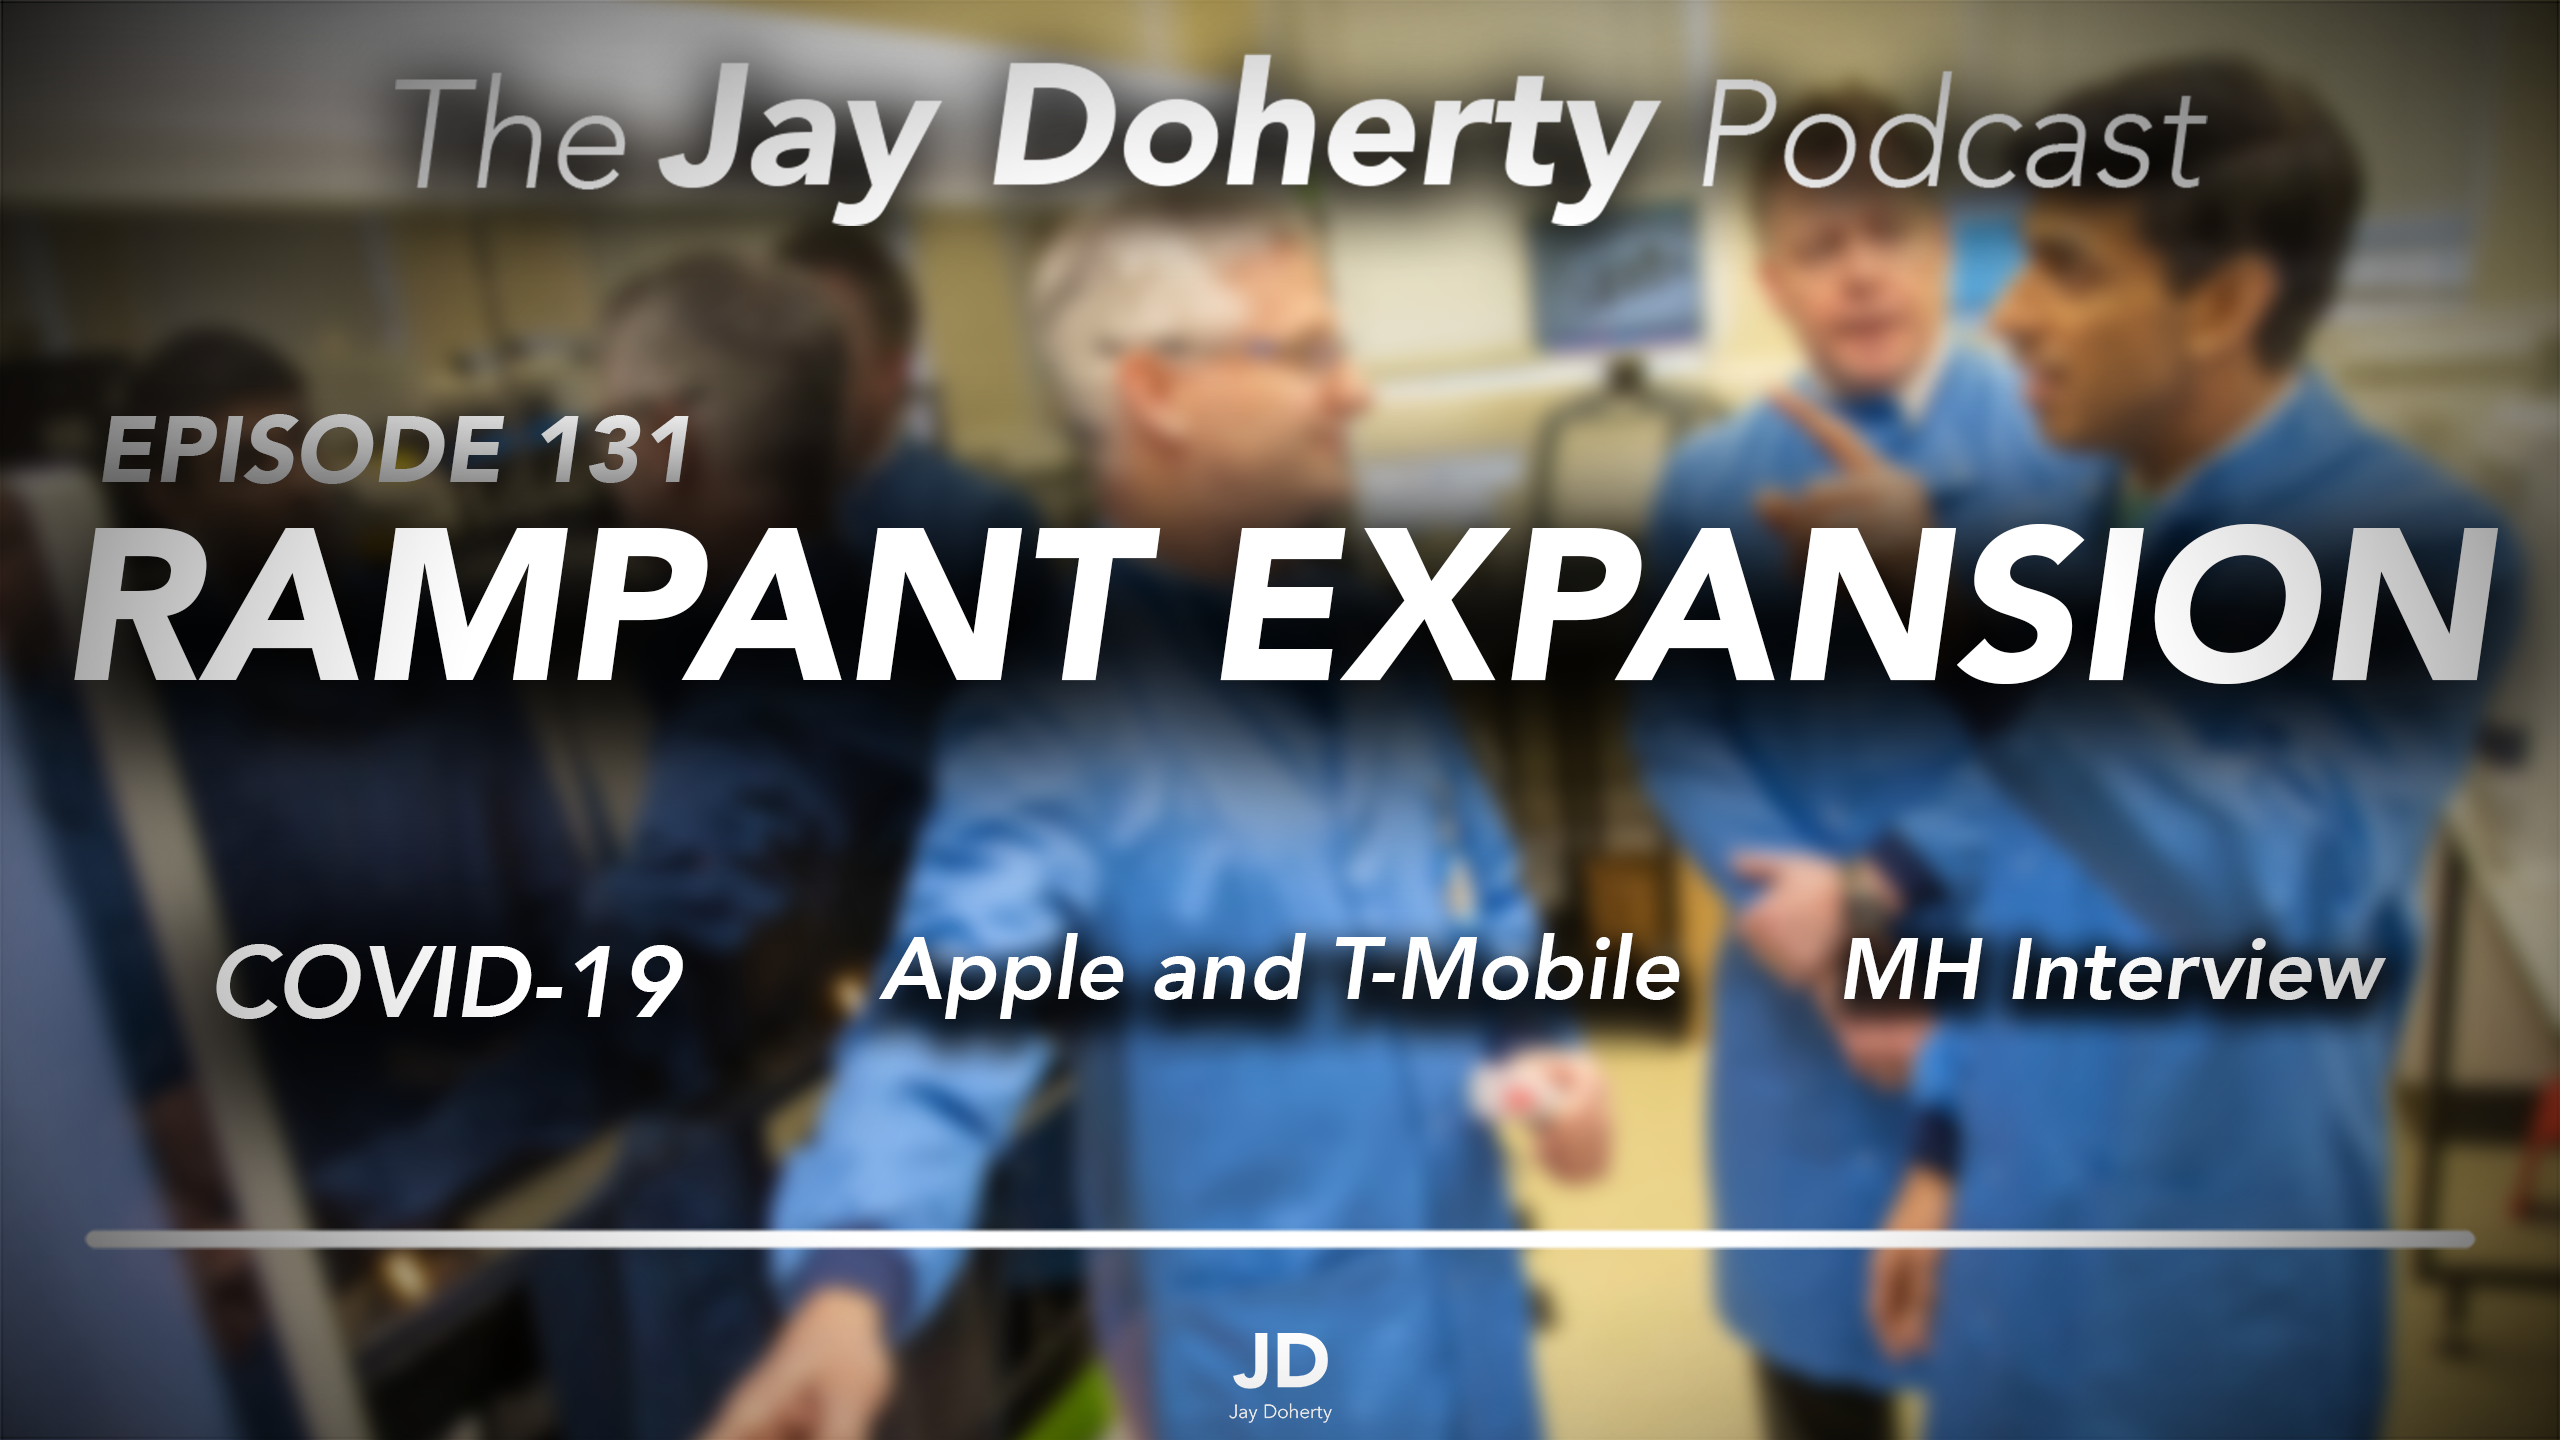 Ep. 131 – Rampant Expansion | COVID-19, Apple & T-Mobile, and an Interview with Michael Heidemann